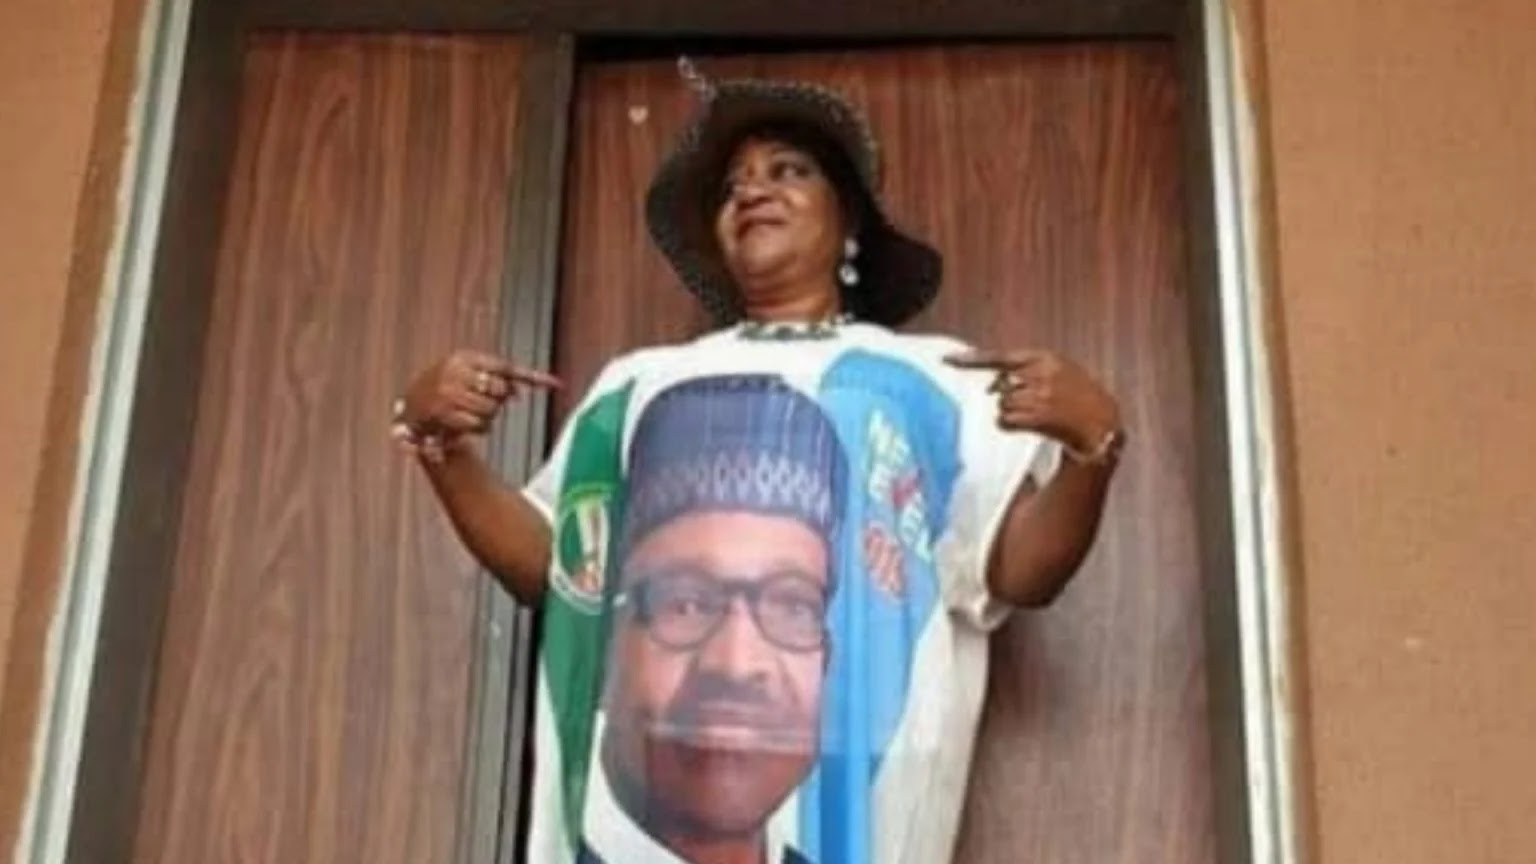 Buhari is set to represent Onochie, but the PDP and Senators disagree on the rejection.